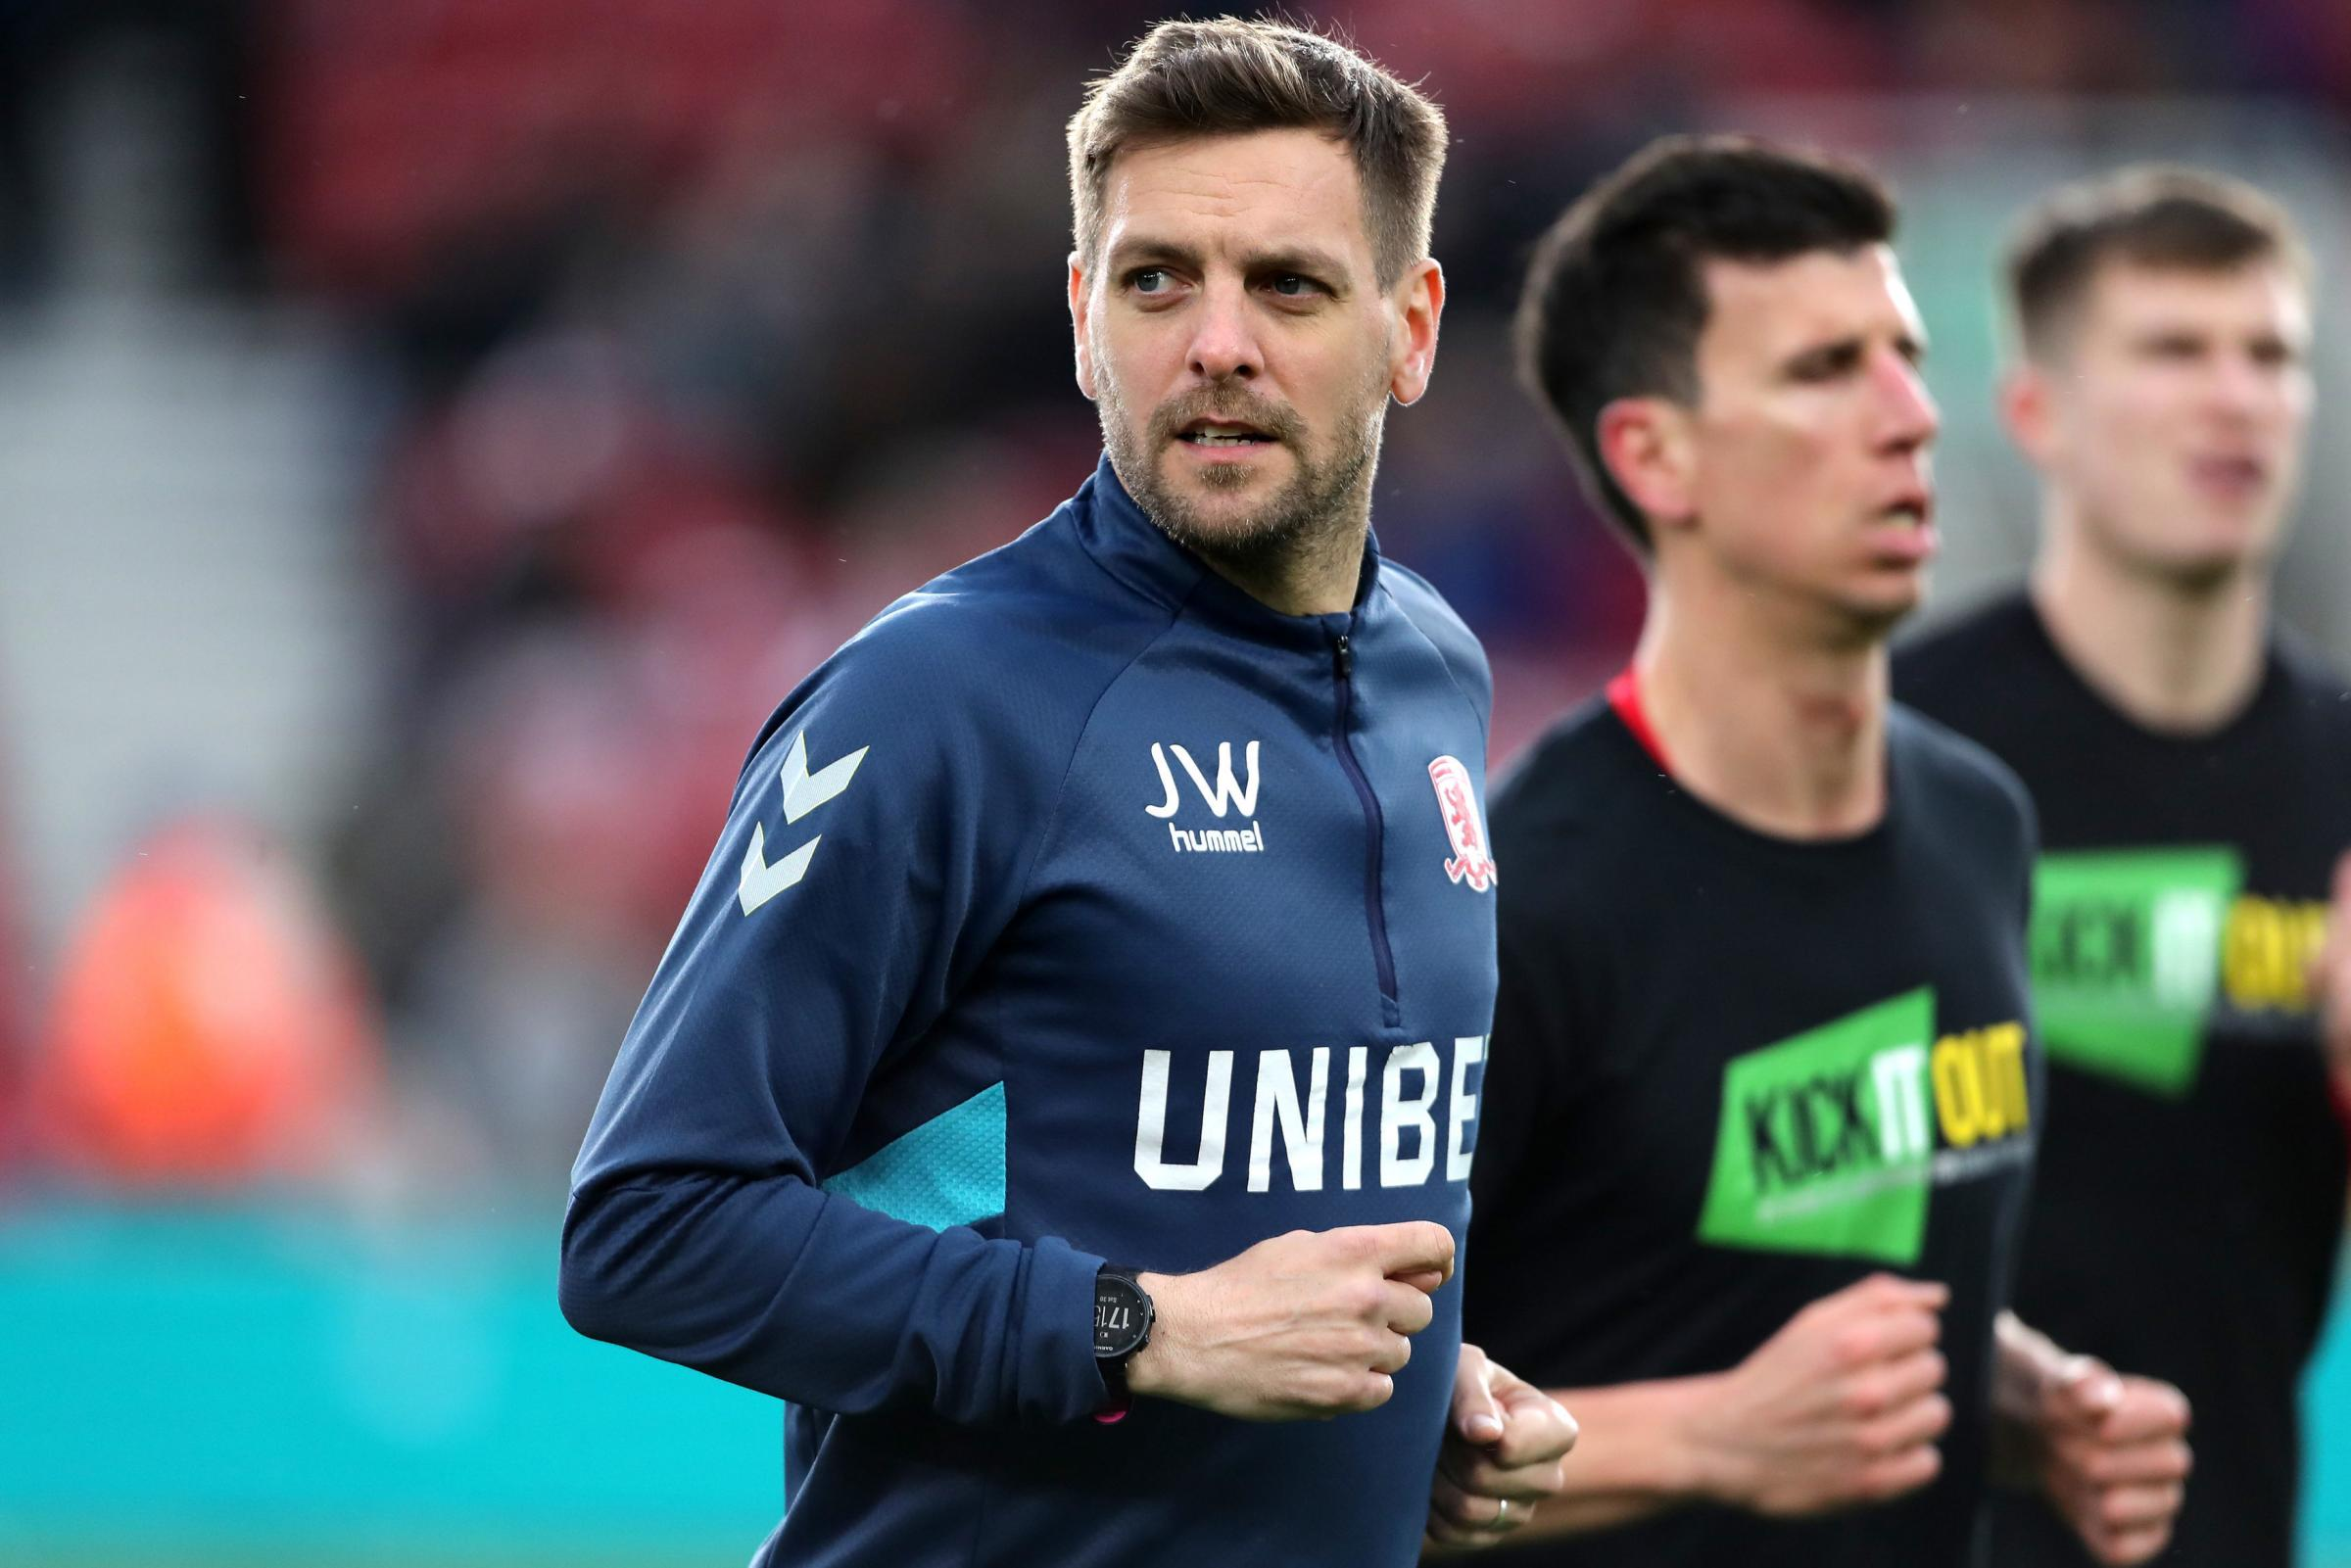 Middlesbrough's reshuffle begins and Woodgate remains in frame